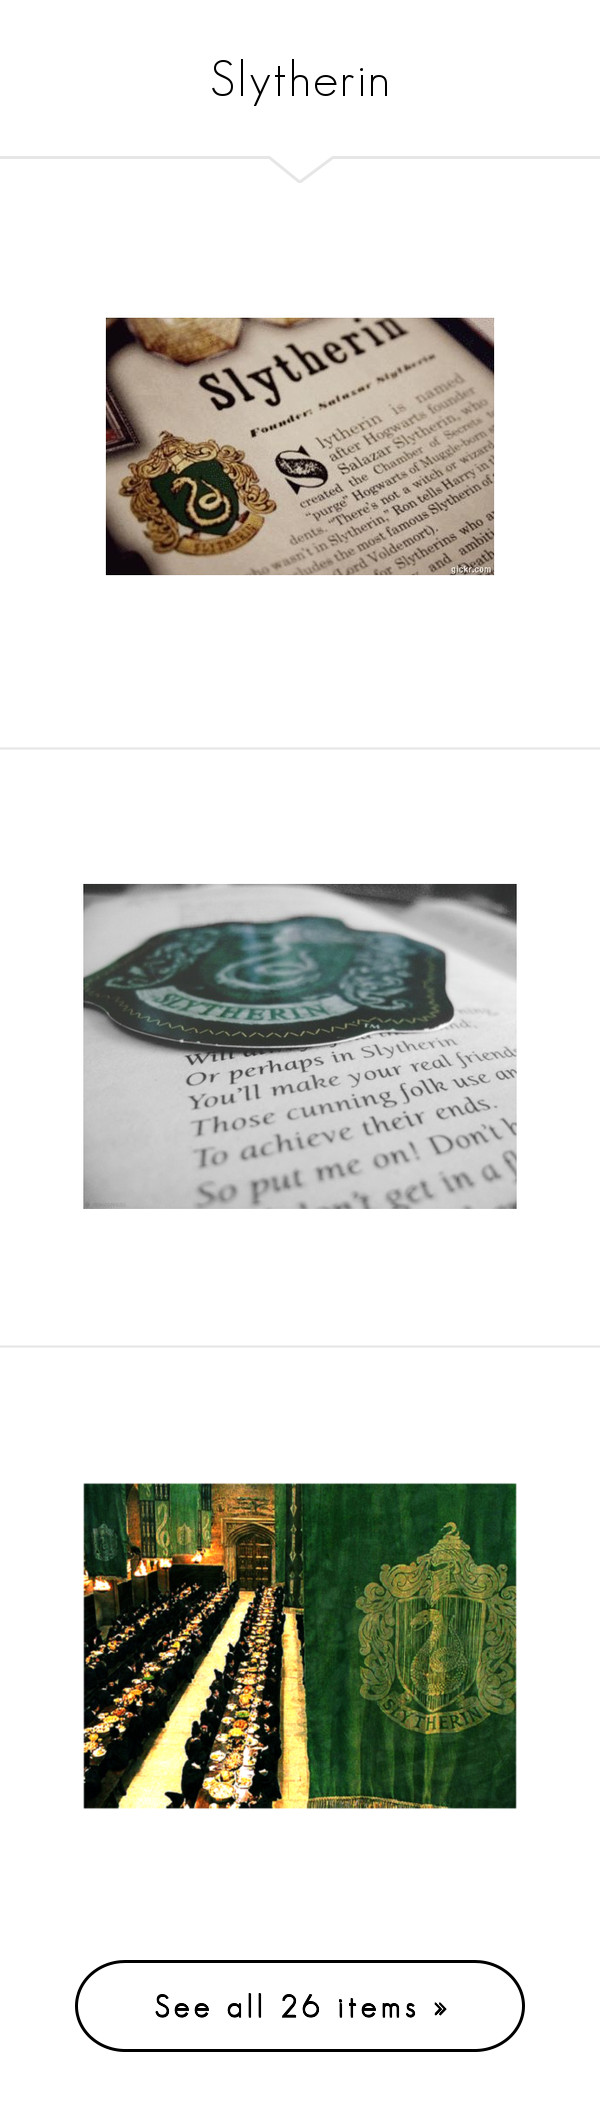 """""""Slytherin"""" by thequeenofreading ❤ liked on Polyvore featuring harry potter, slytherin, hogwarts, pictures, backgrounds, text, quotes, phrase, saying and hp"""